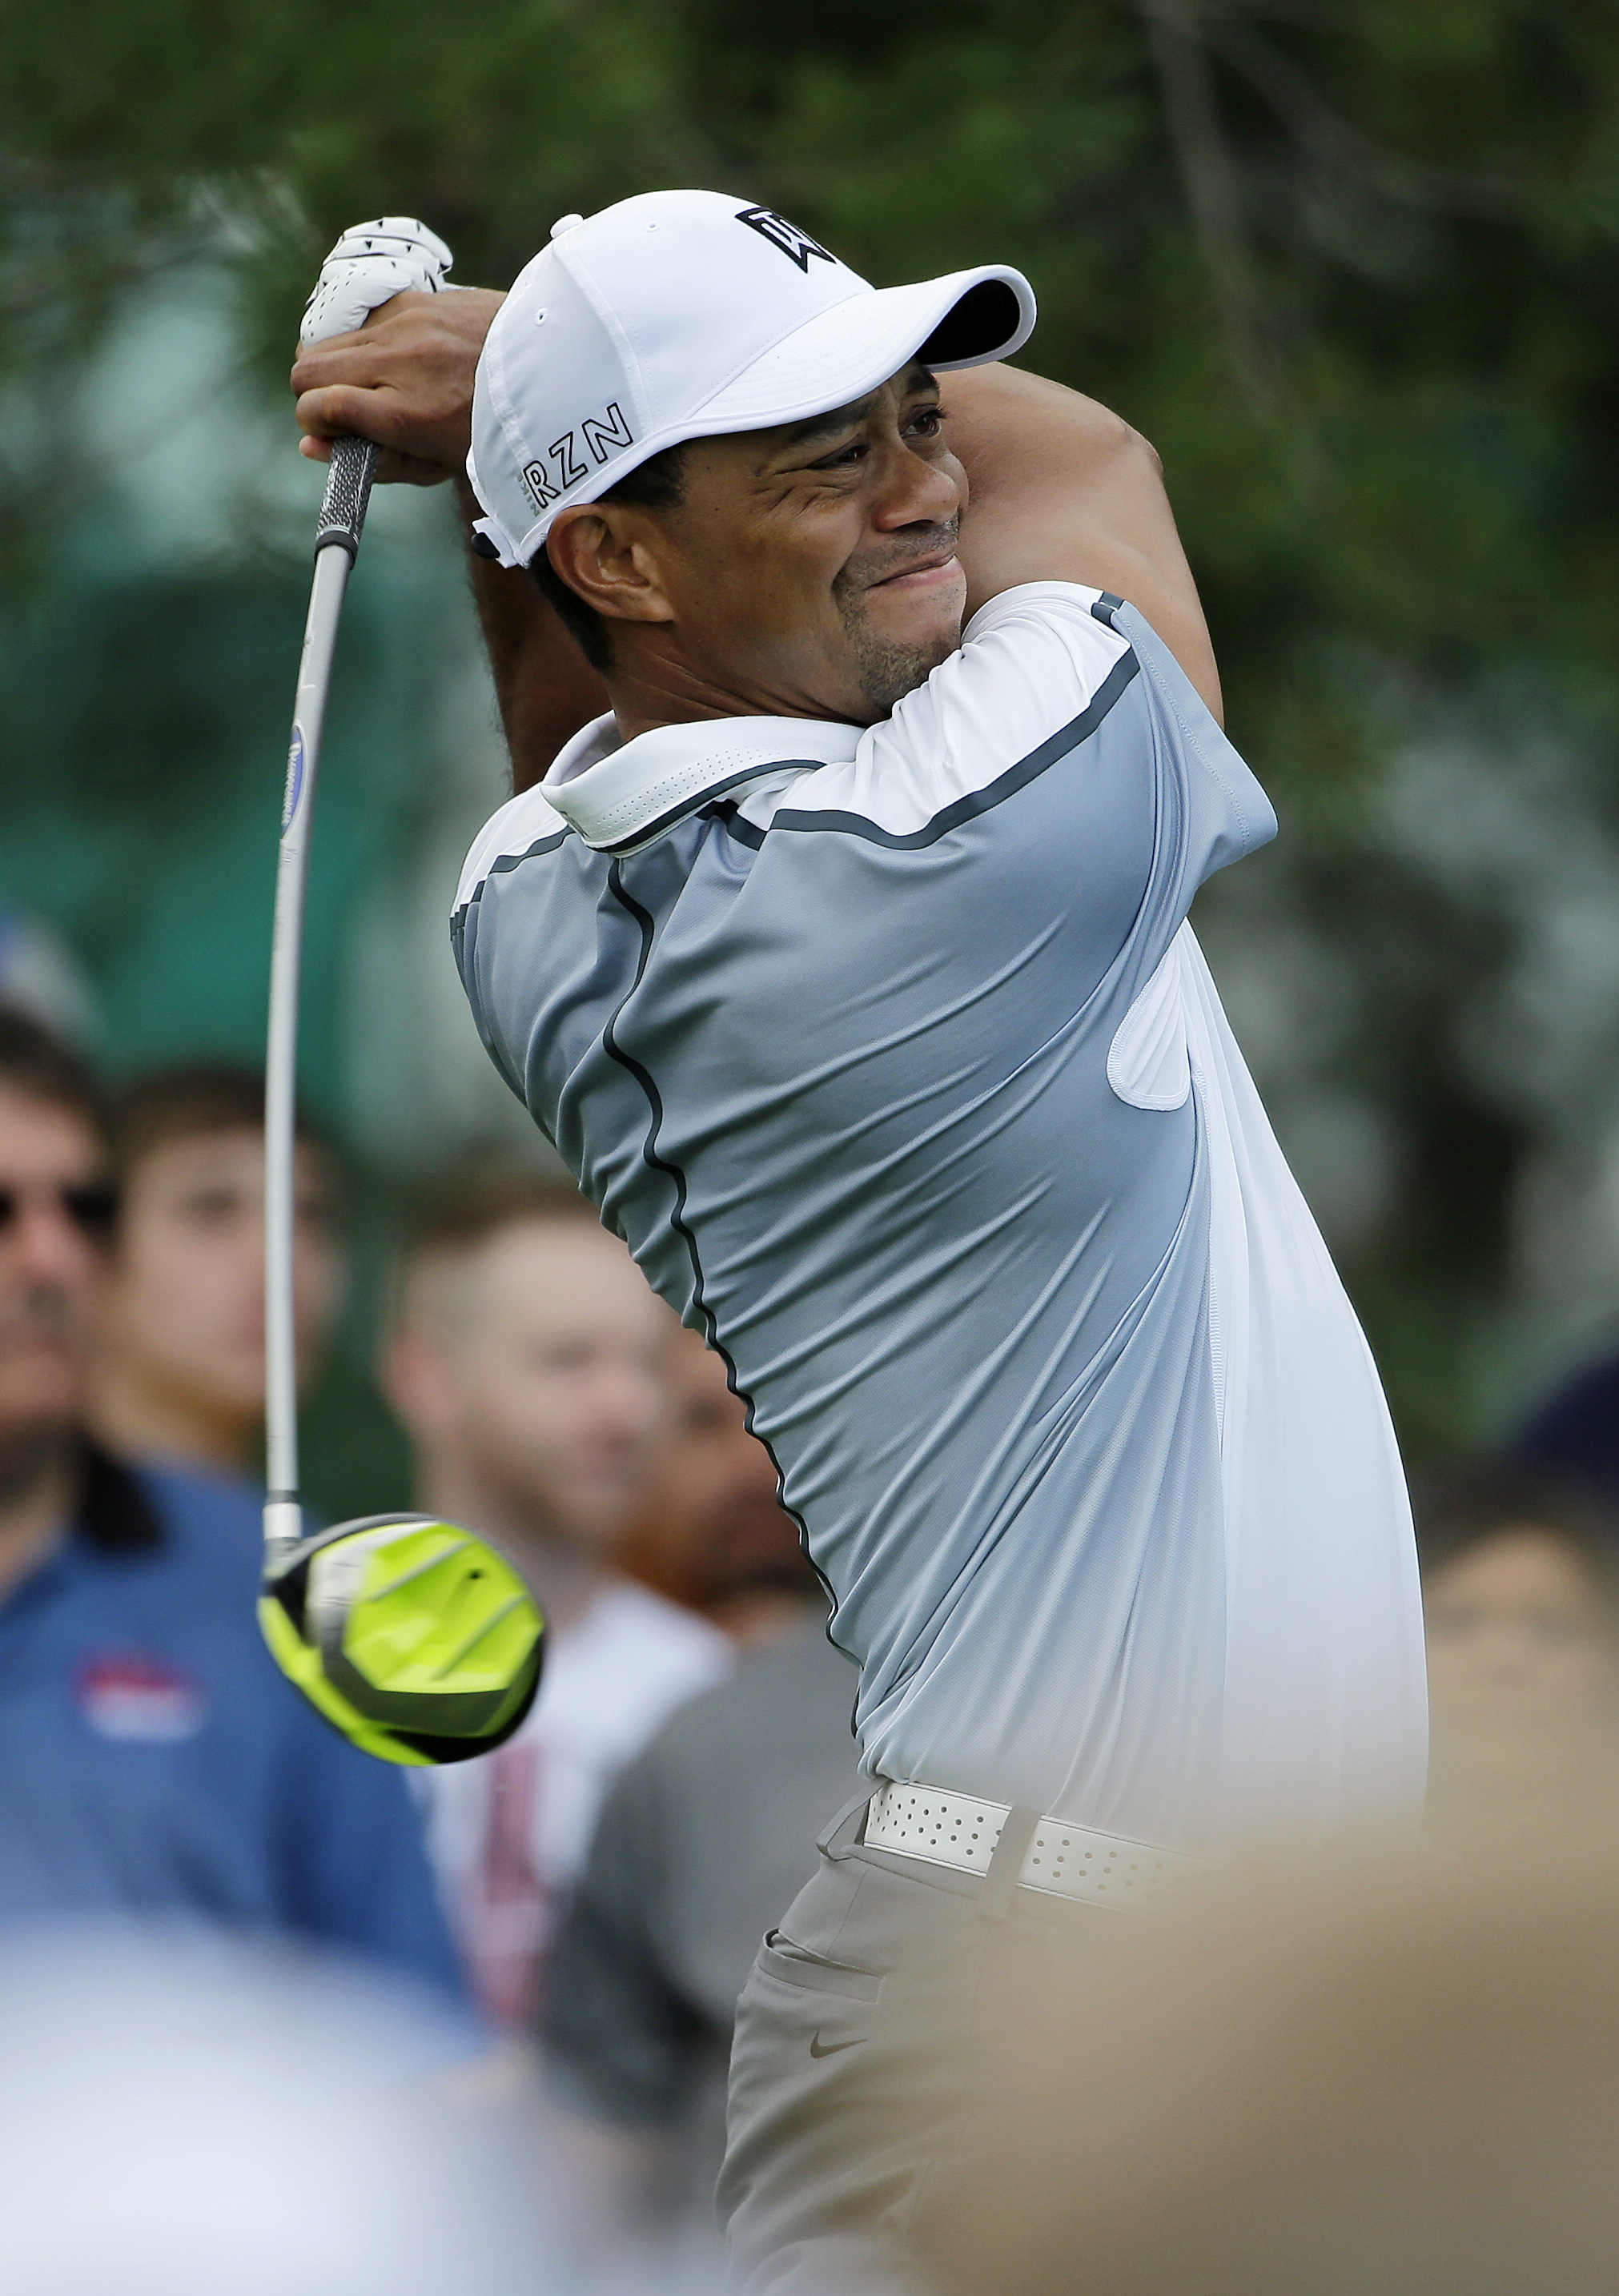 Tiger Woods watches his tee shot on the 11th hole during the first round of the Memorial golf tournament Thursday, June 4, 2015, in Dublin, Ohio. (AP Photo/Darron Cummings)